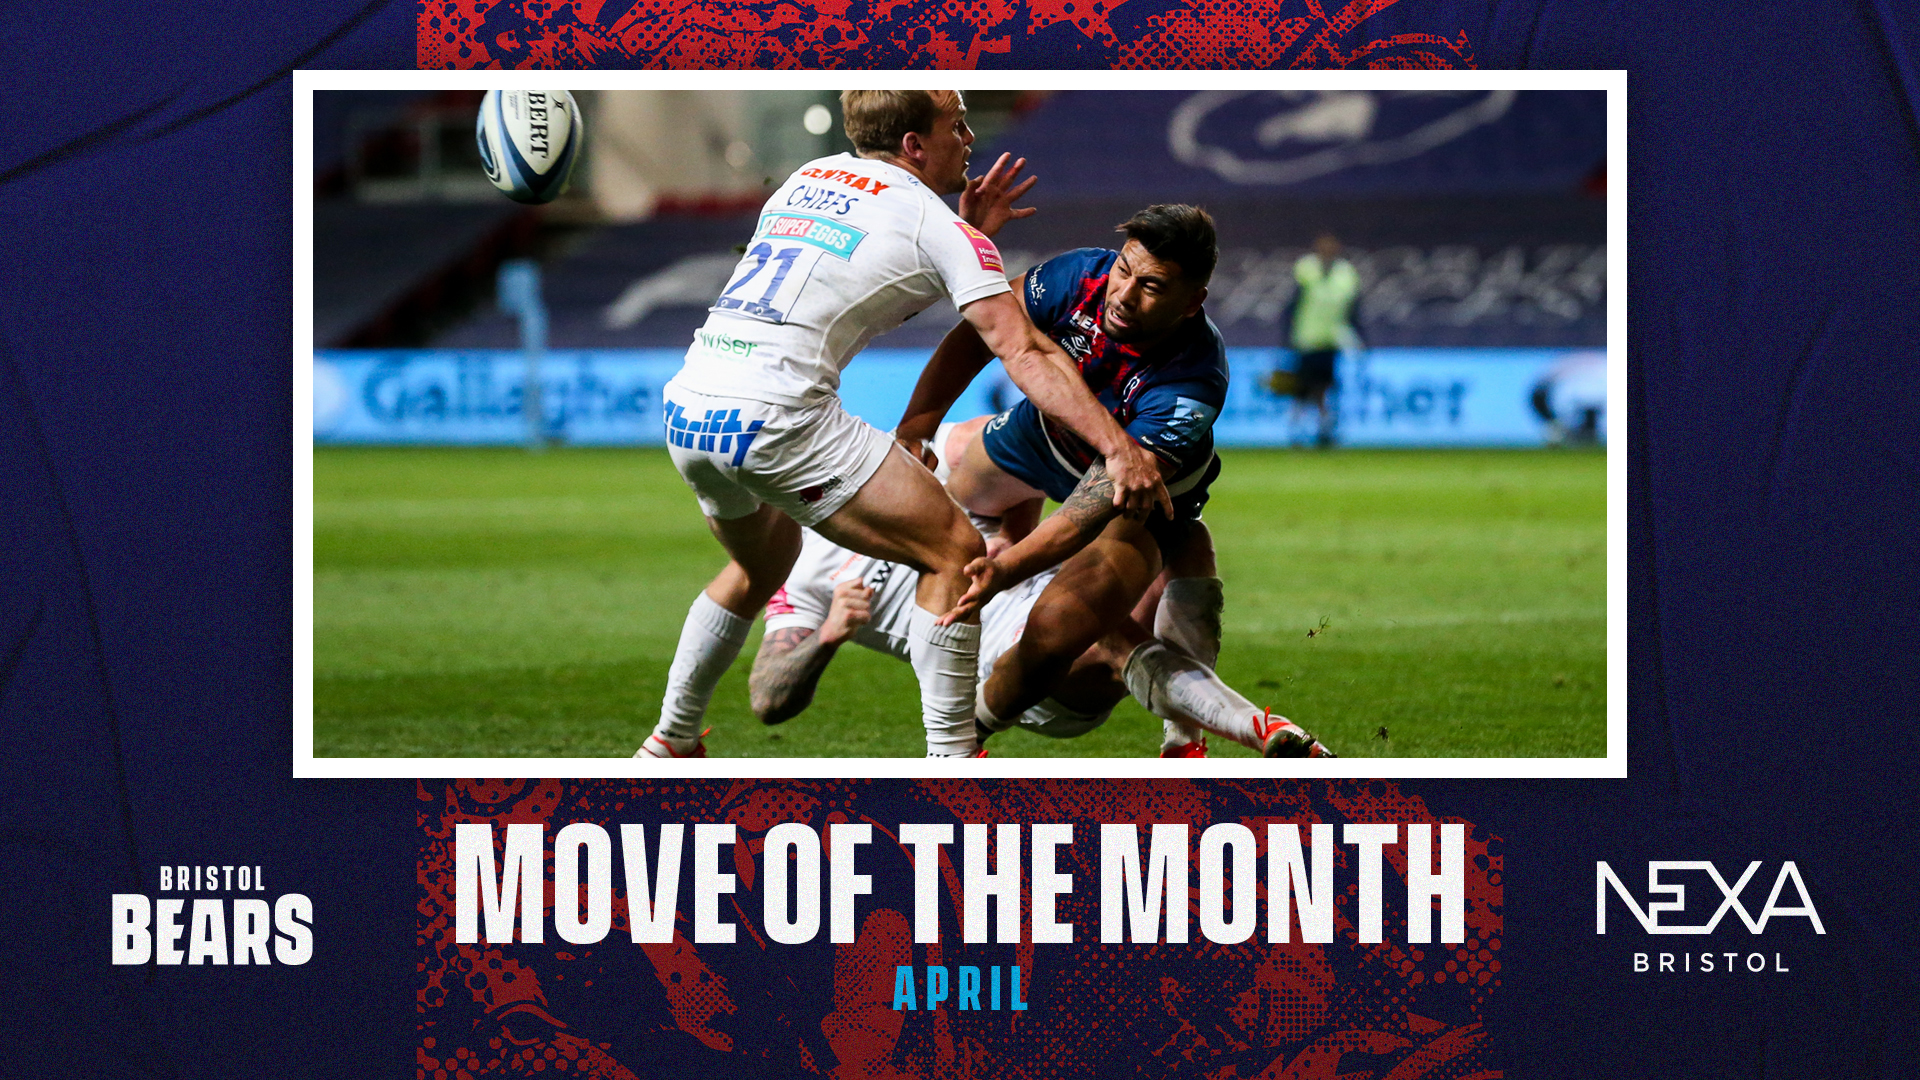 Vote for your Nexa Bristol Move of the Month for April